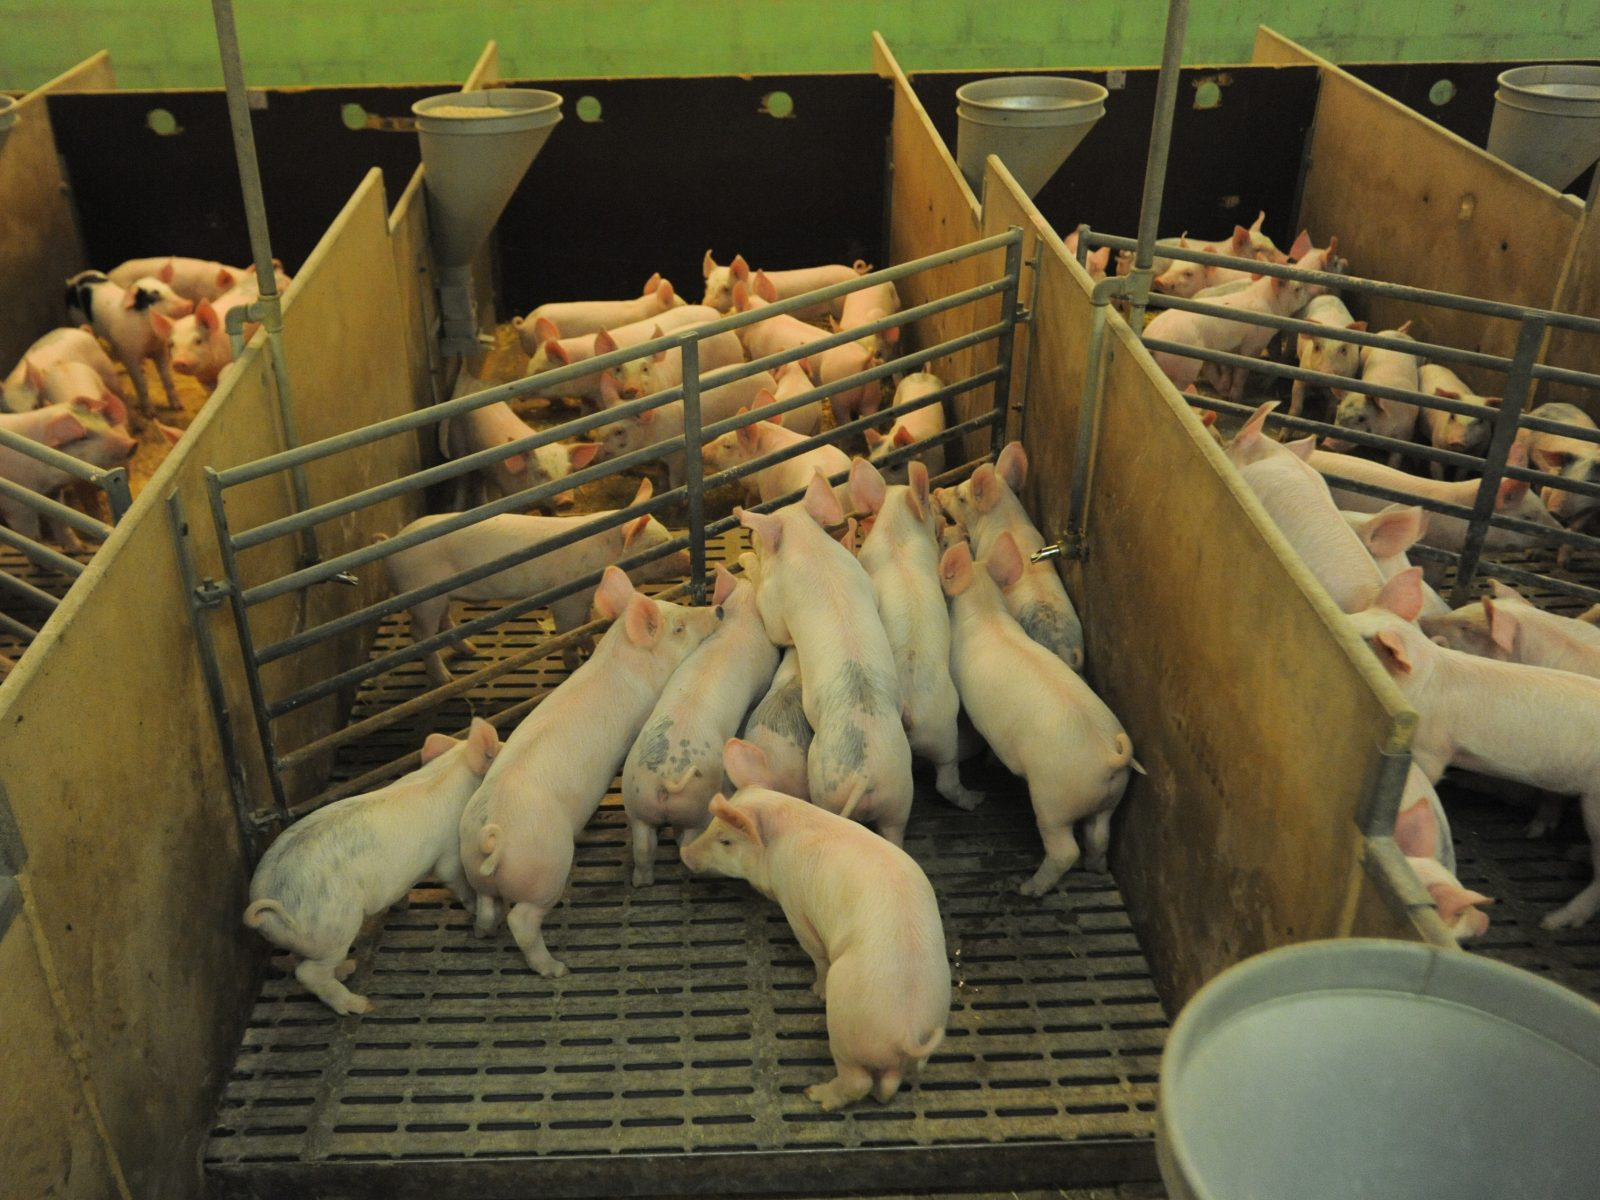 Young pigs crowd pens in Swedish factory farms